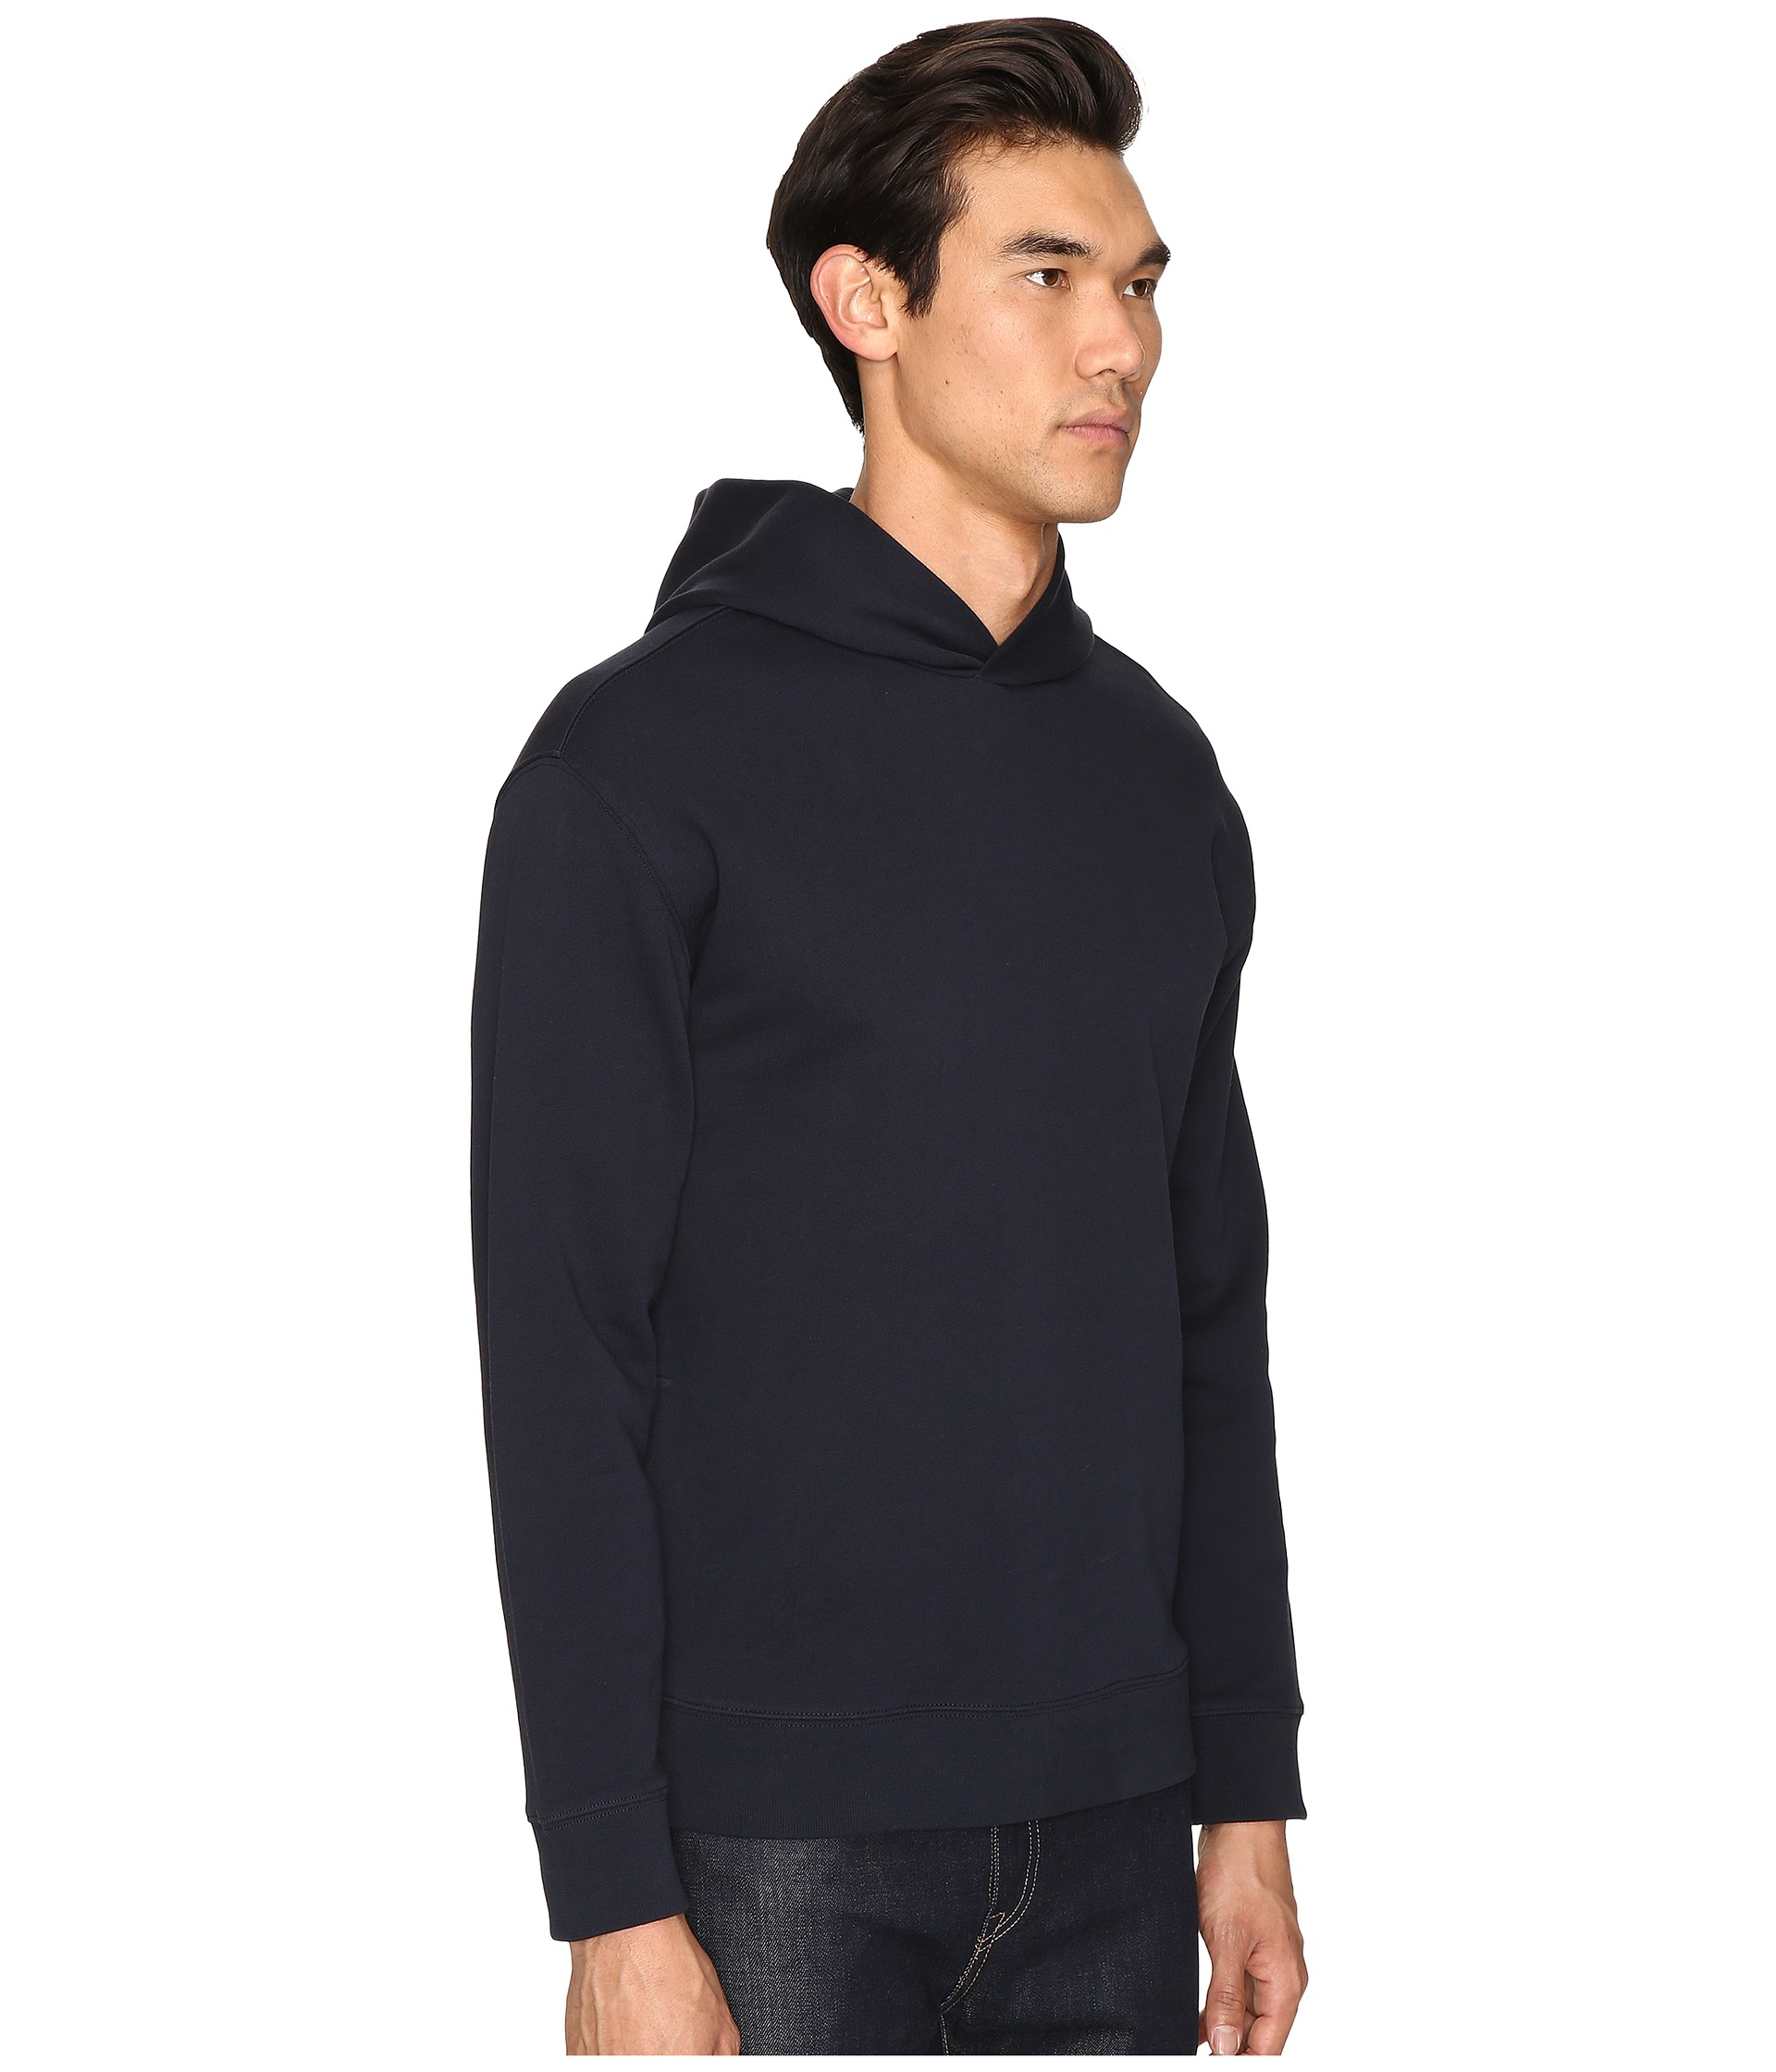 zip hooded sweatshirts wholesale, zip up hoodies Wholesale, Blank zipper sweatshirts wholesale, blank 50/50 zip hoodies distributor, cotton zipper hooded sweats supplier.